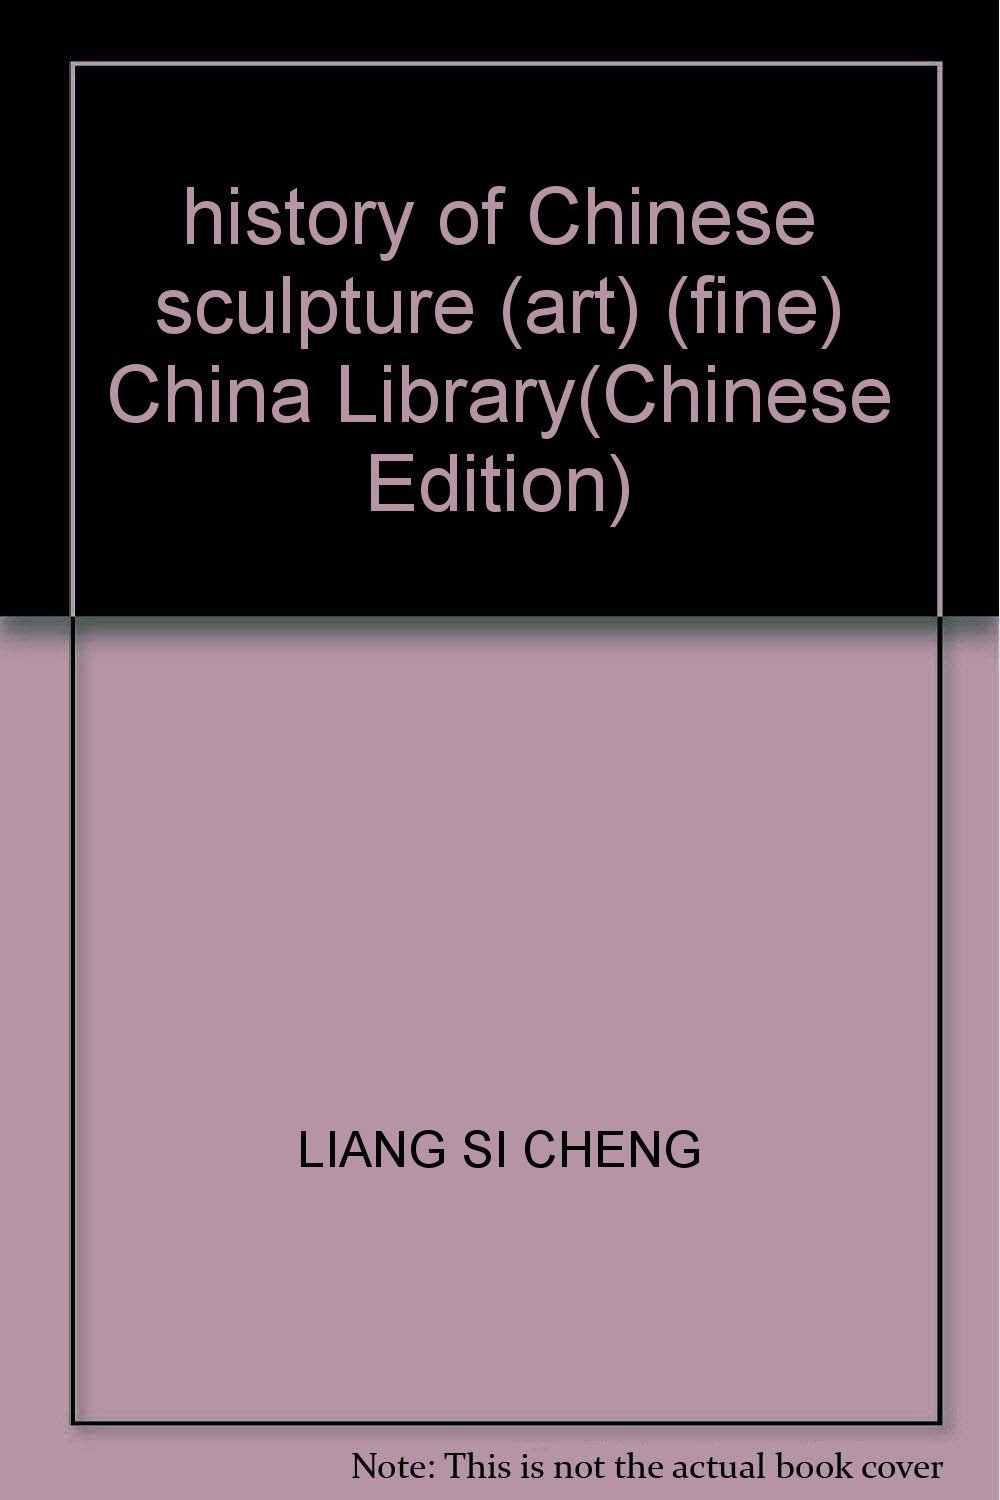 history of Chinese sculpture (art) (fine) China Library(Chinese